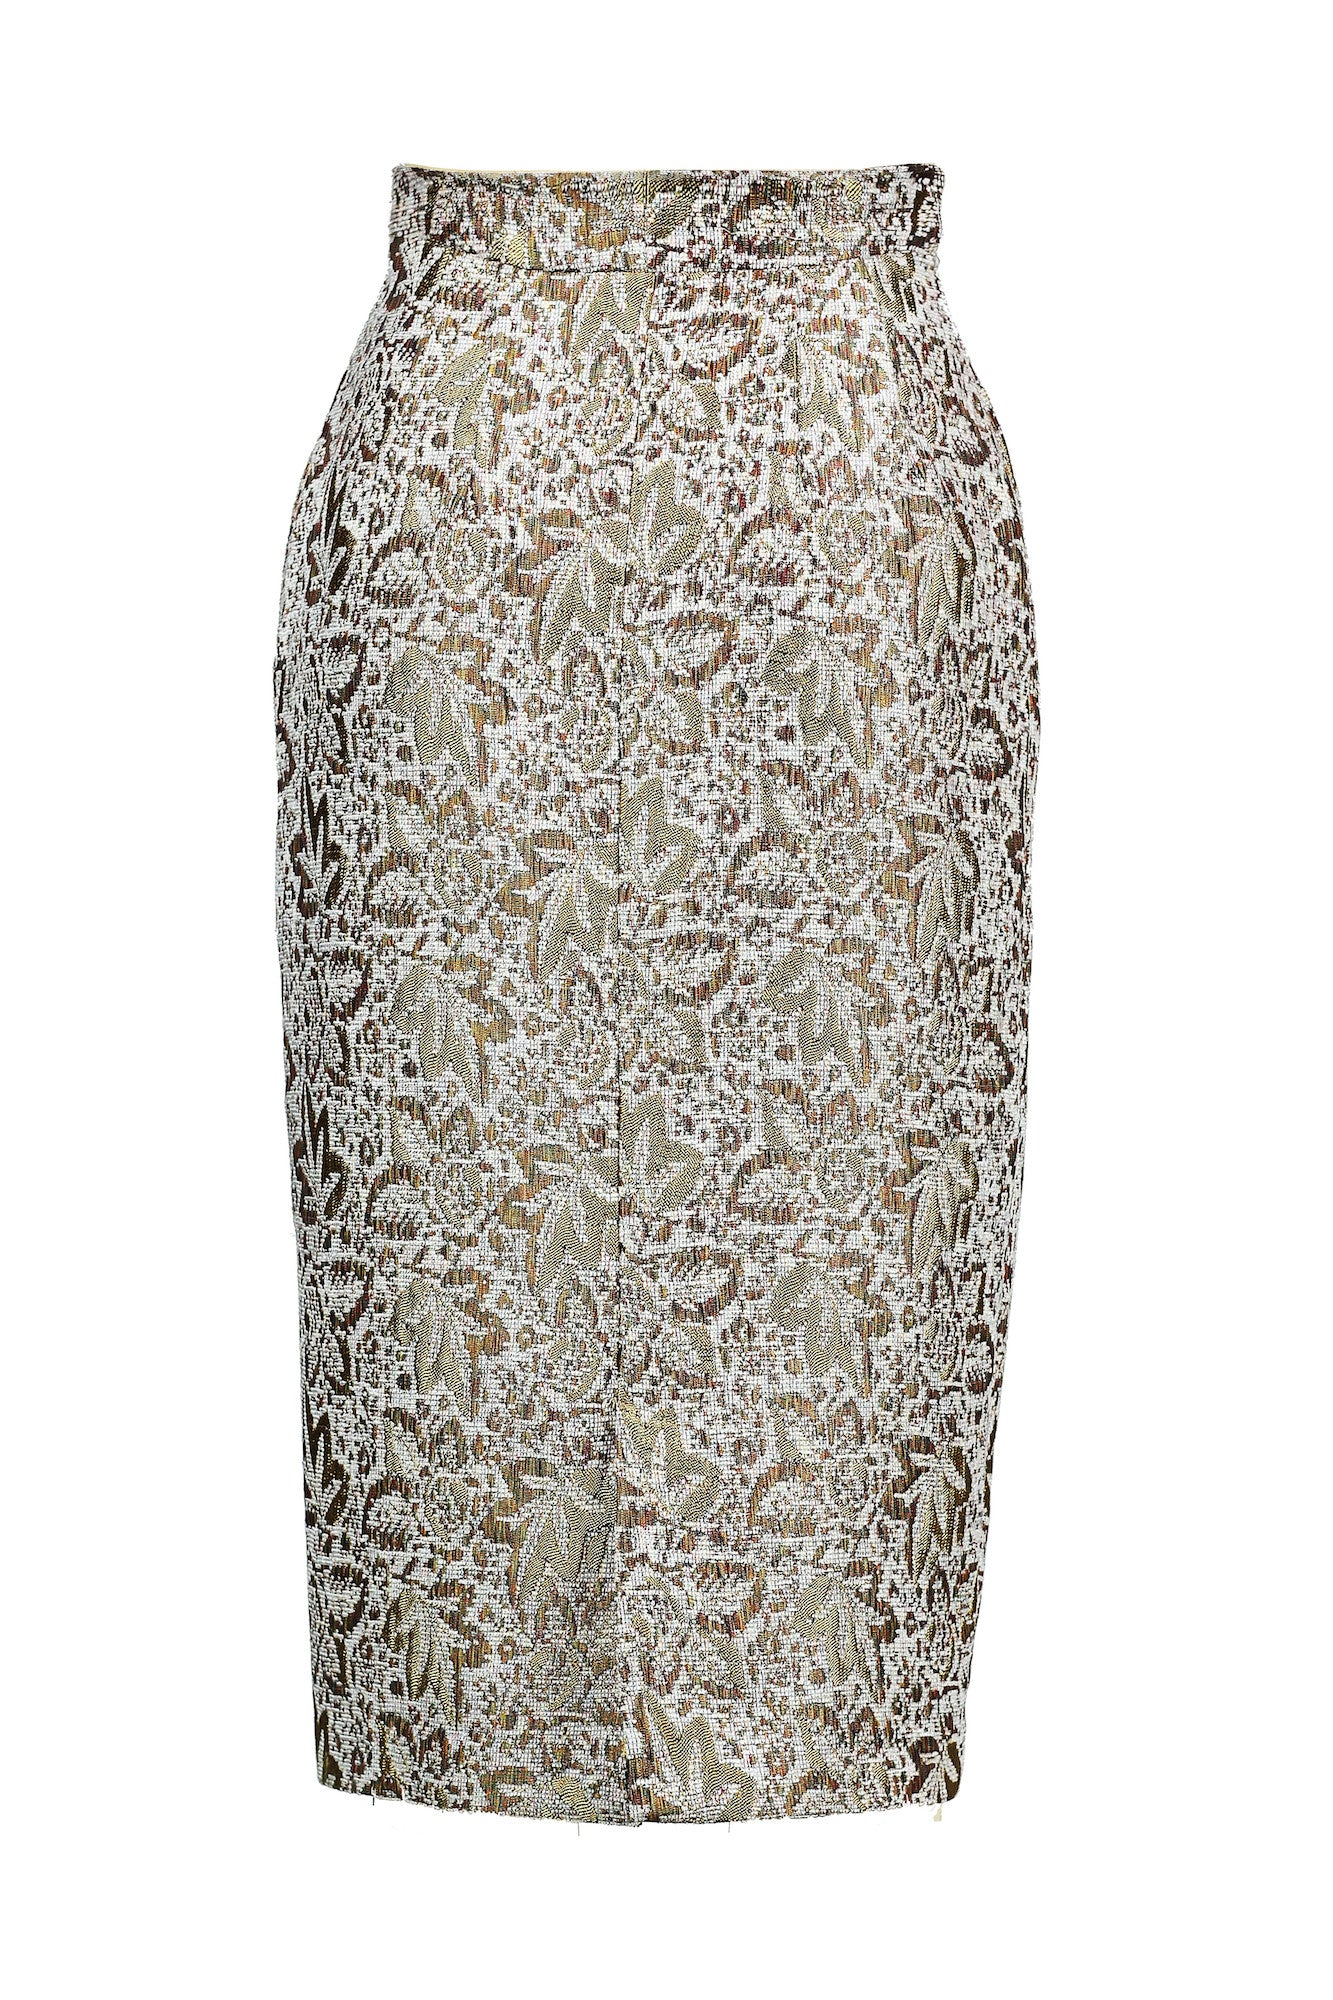 Textured High-waisted Pencil Skirt for All Seasons - Steve Guthrie - 4